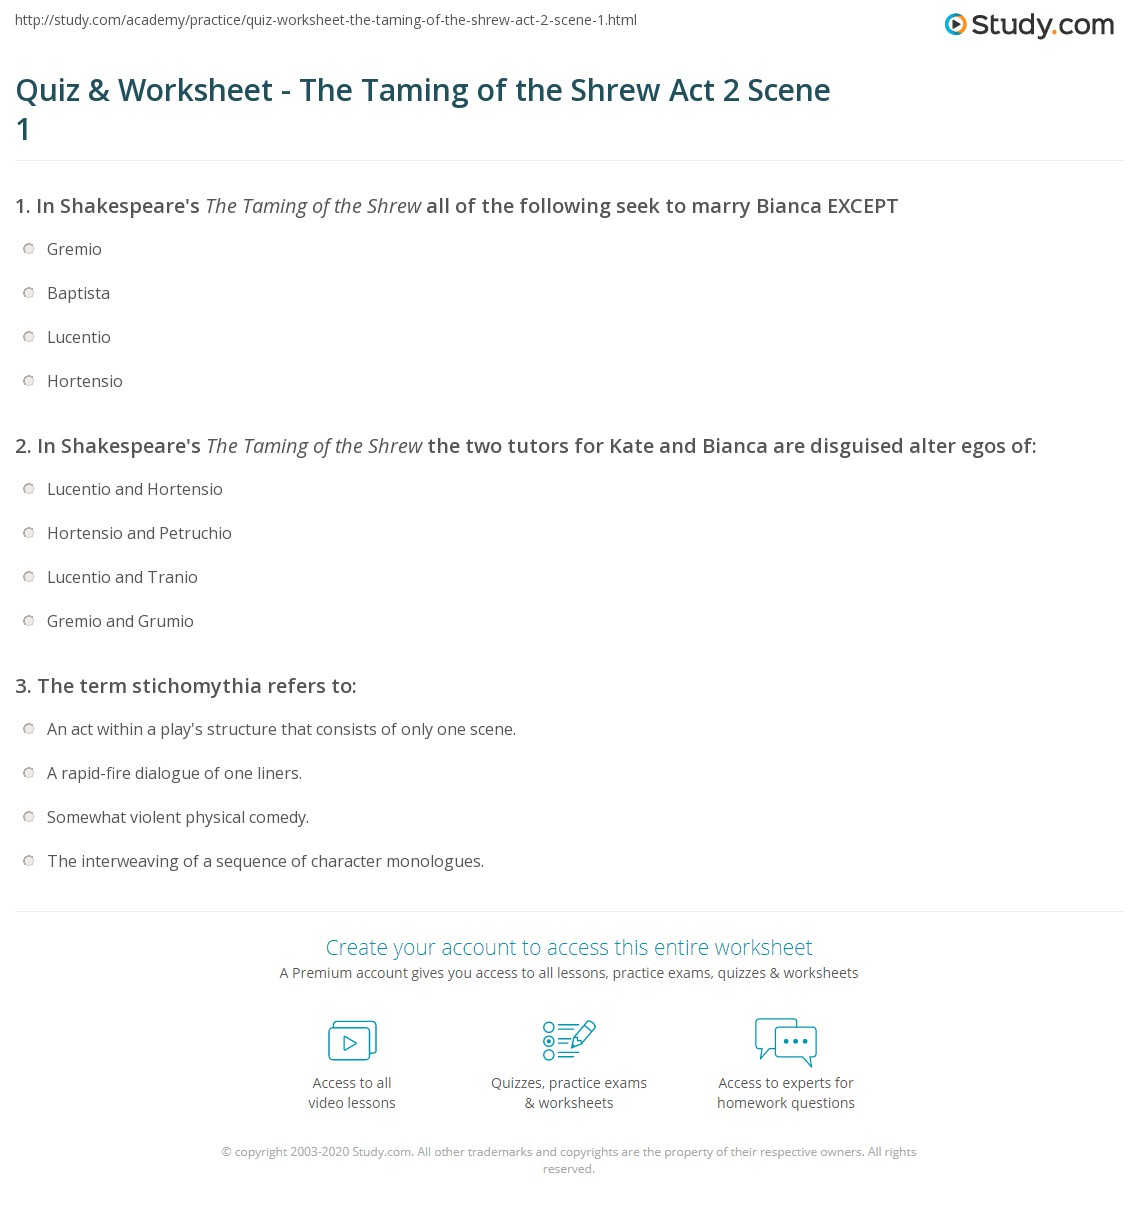 quiz worksheet the taming of the shrew act 2 scene 1 study com print the taming of the shrew summary act 2 scene 1 worksheet